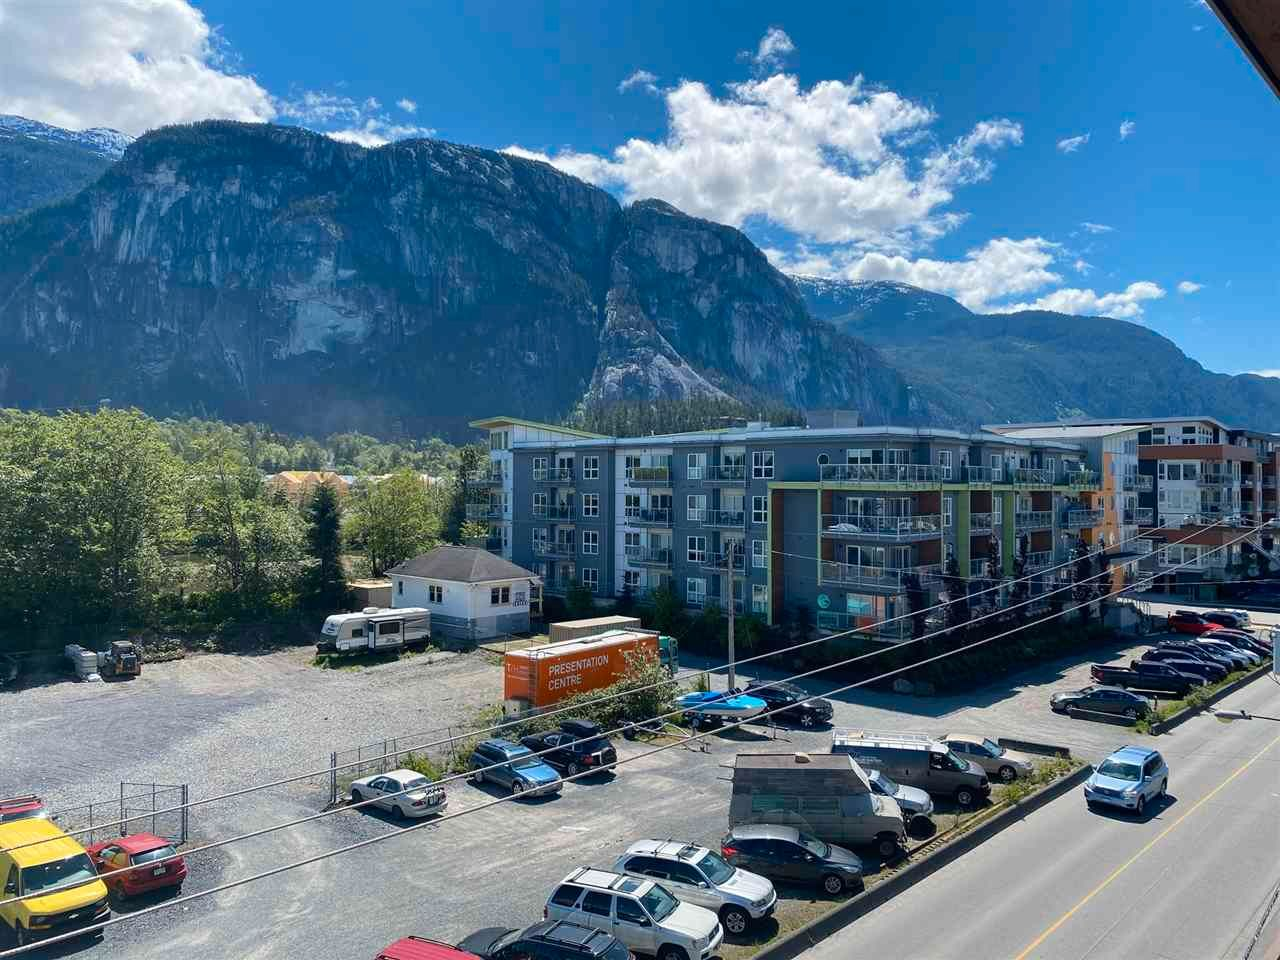 """Main Photo: 406 38142 CLEVELAND Avenue in Squamish: Downtown SQ Condo for sale in """"CLEVELAND COURTYARD"""" : MLS®# R2581310"""